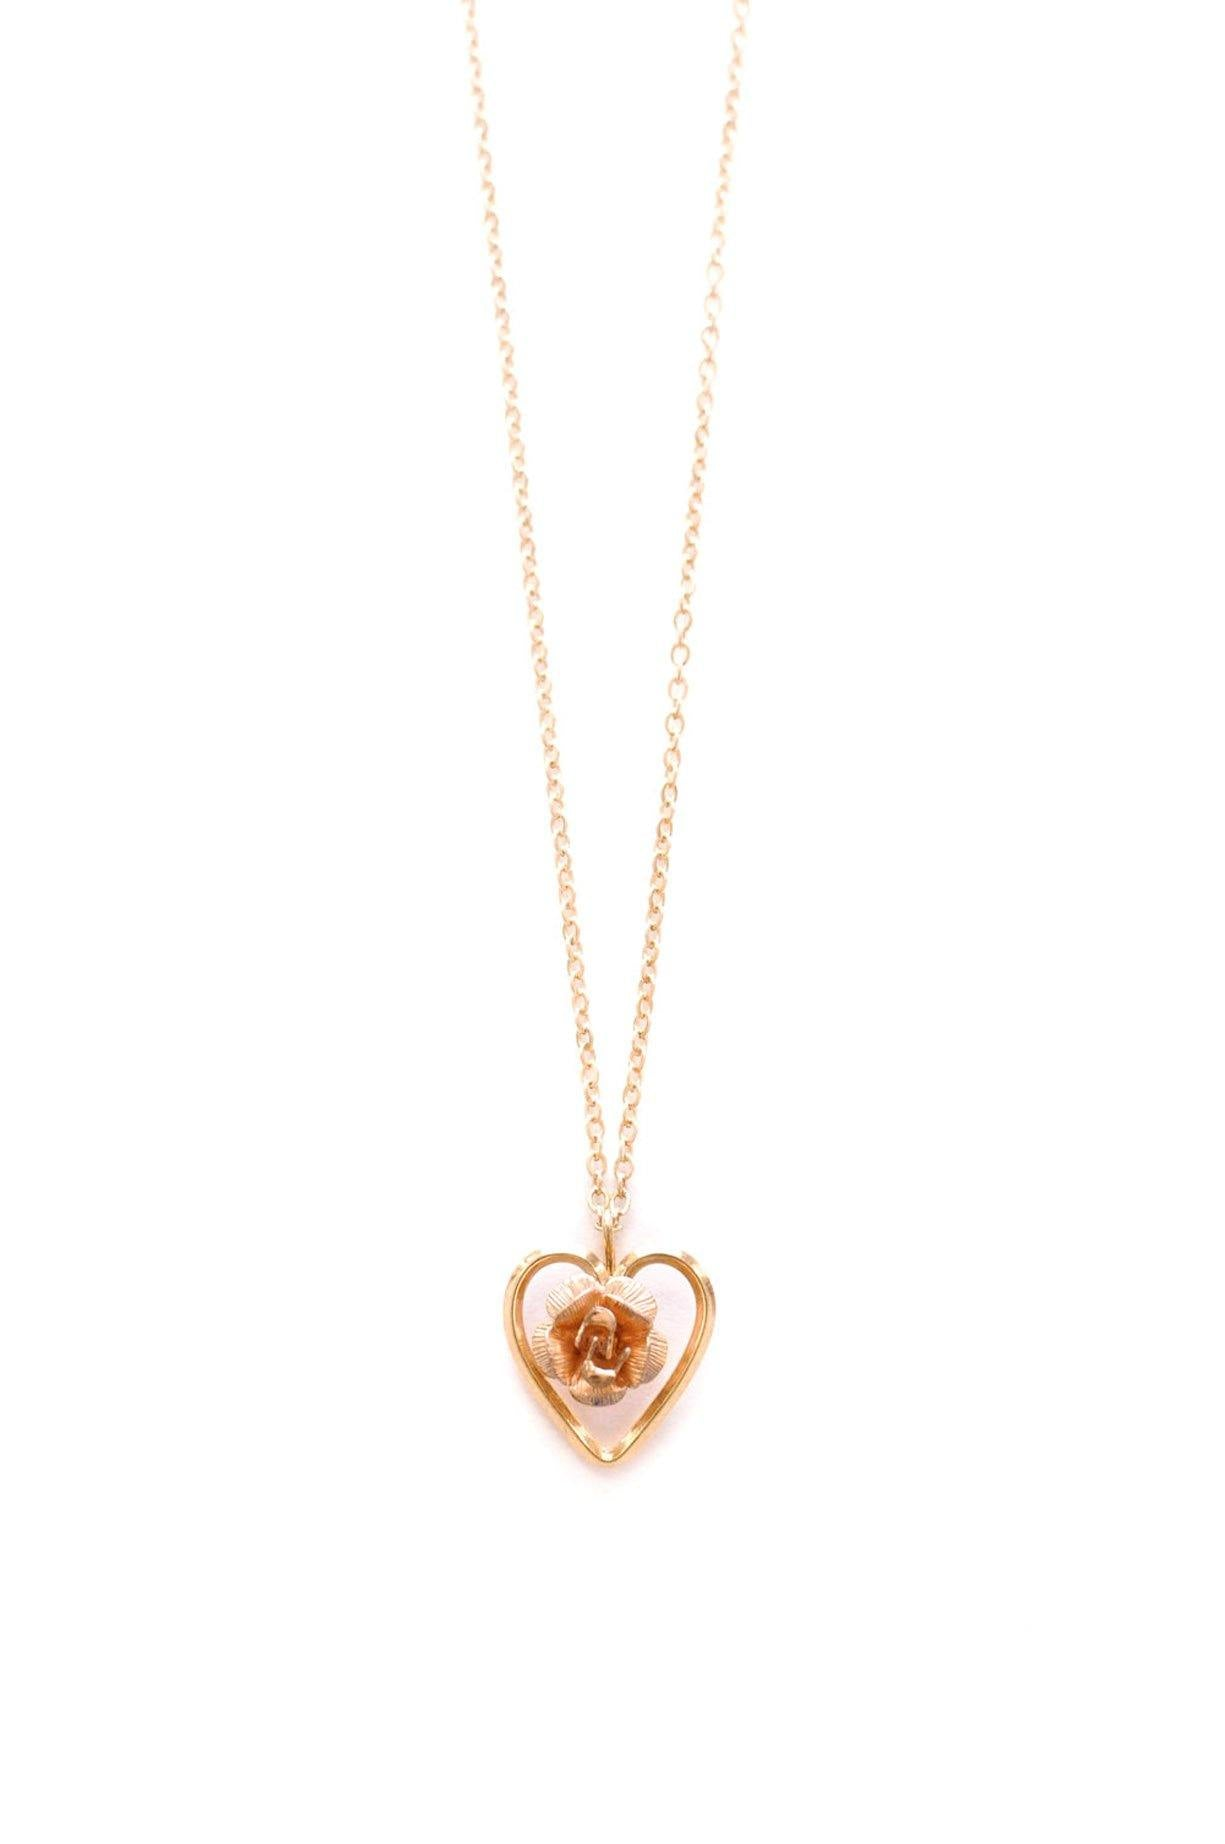 Vintage Dainty Rose Heart Necklace from Sweet & Spark